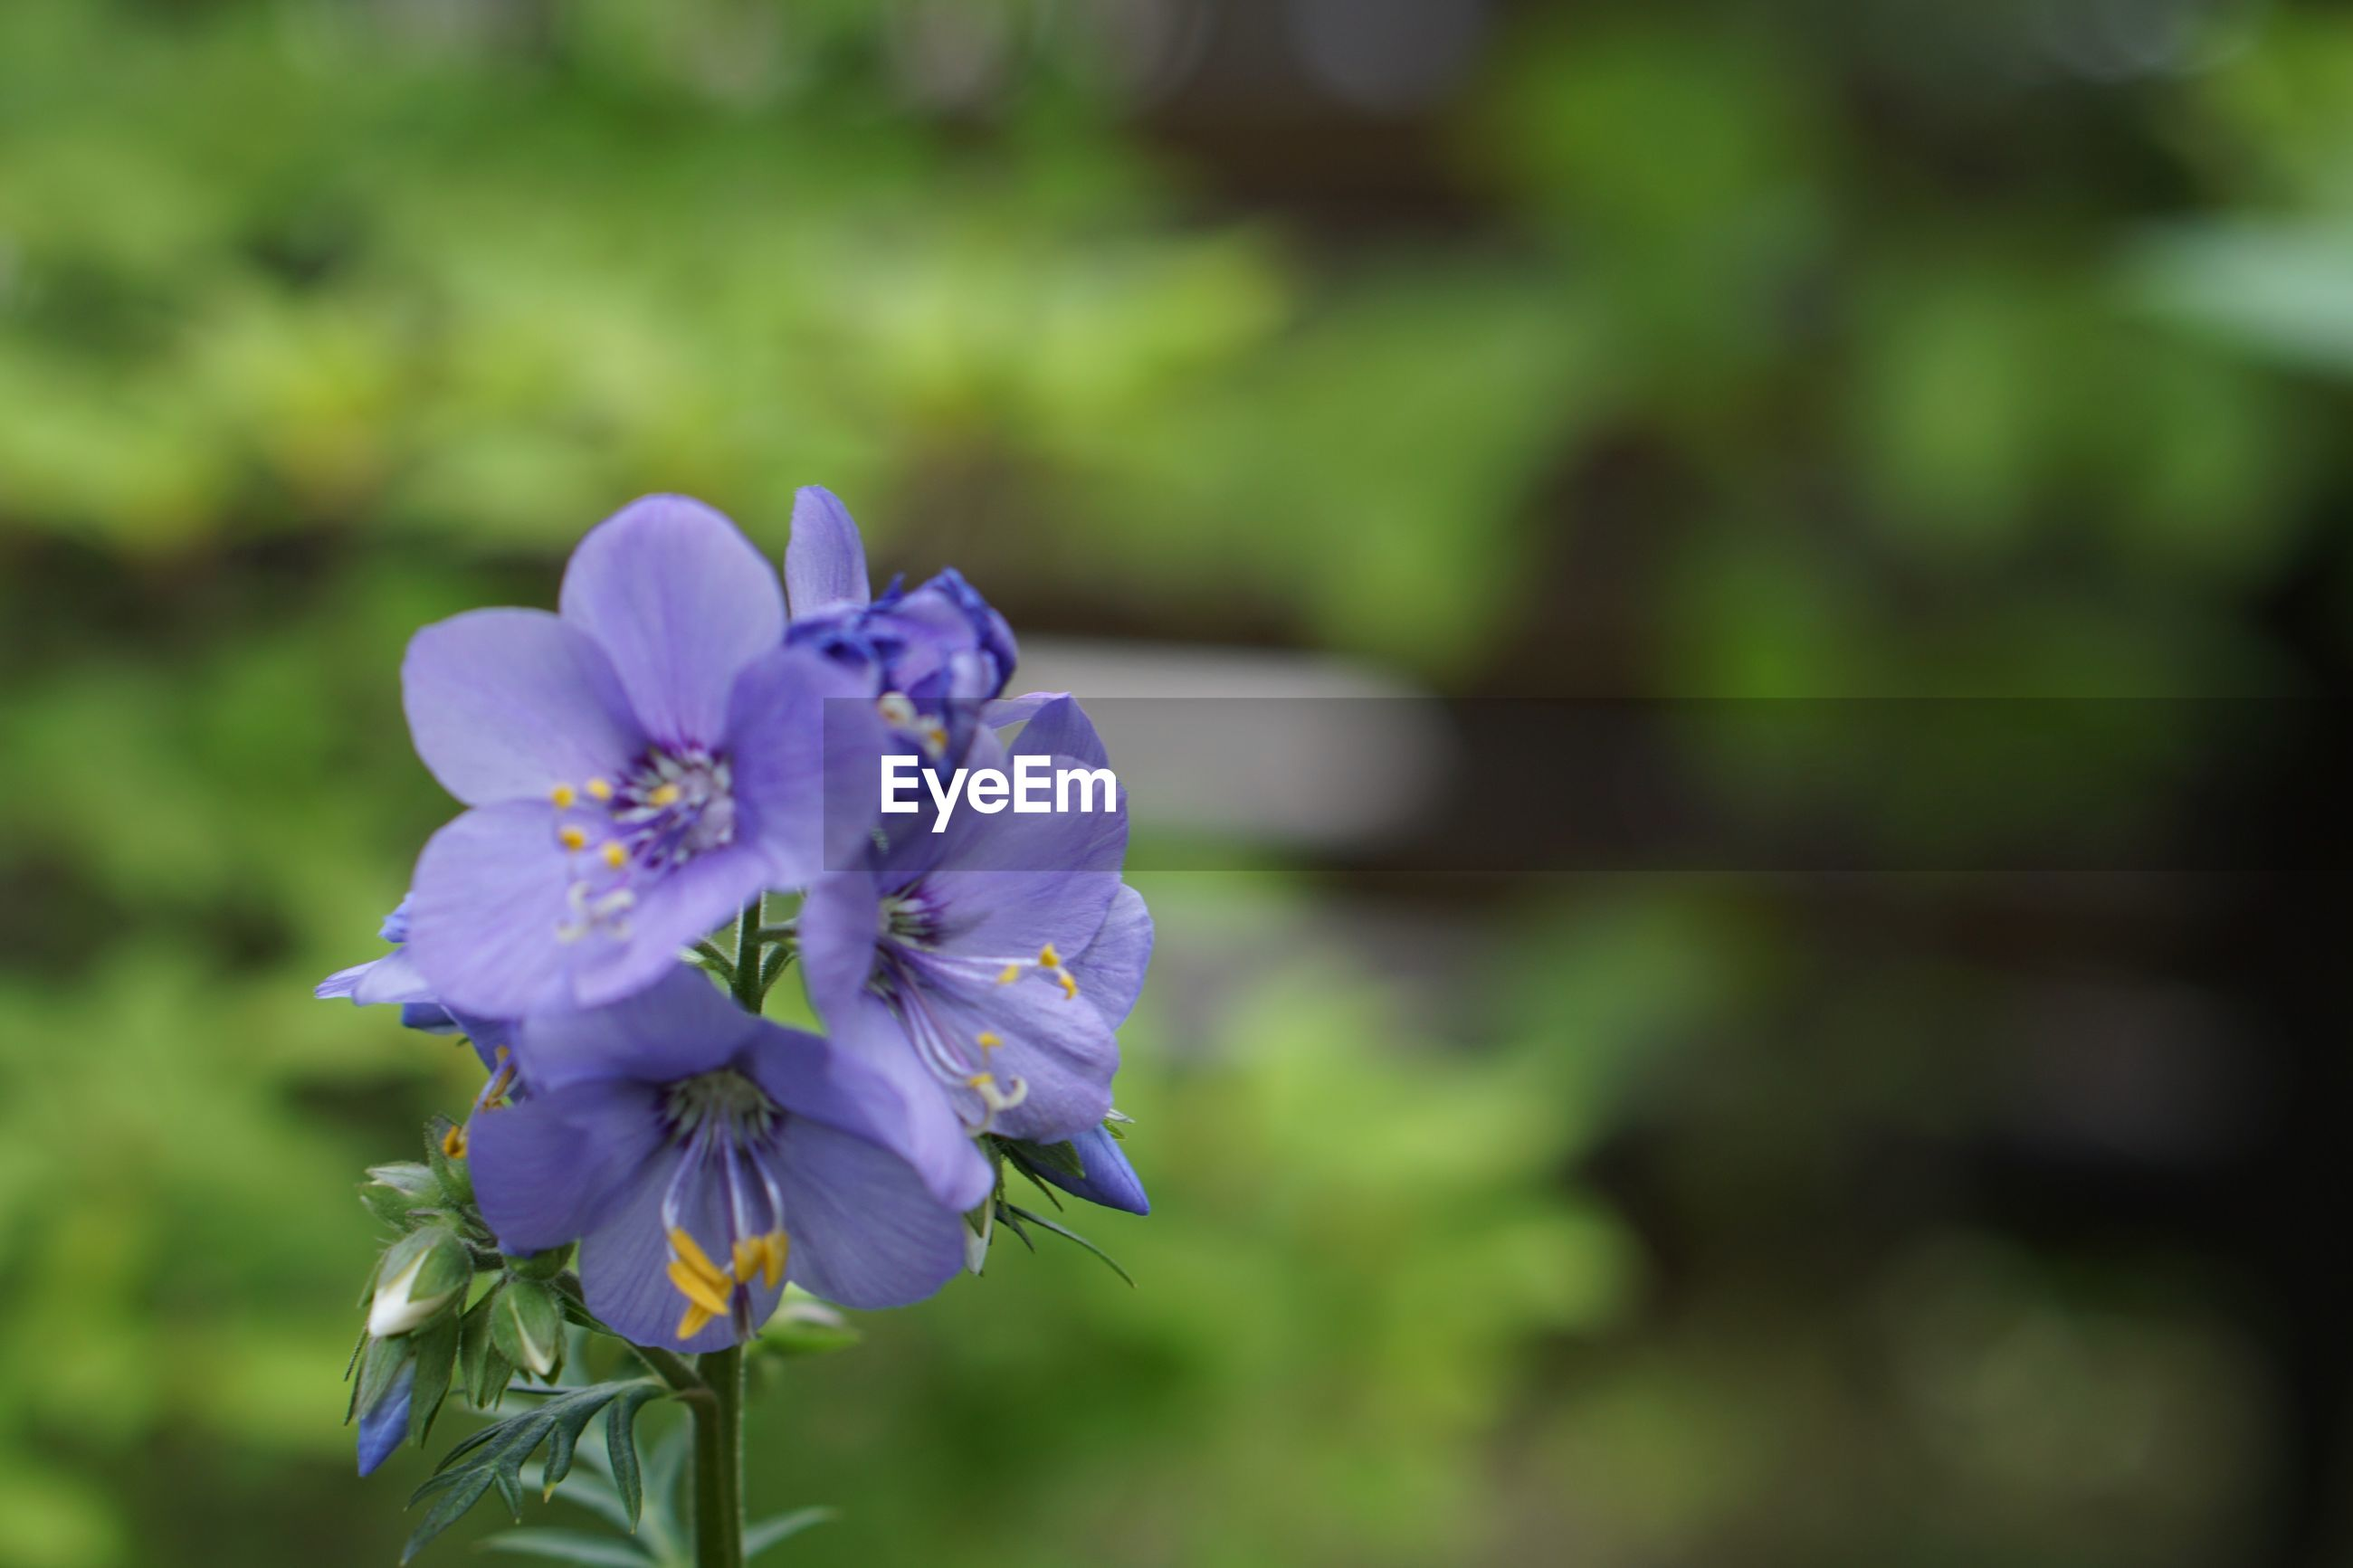 flowering plant, flower, vulnerability, fragility, plant, beauty in nature, freshness, petal, growth, inflorescence, close-up, flower head, nature, focus on foreground, purple, no people, day, outdoors, selective focus, beauty